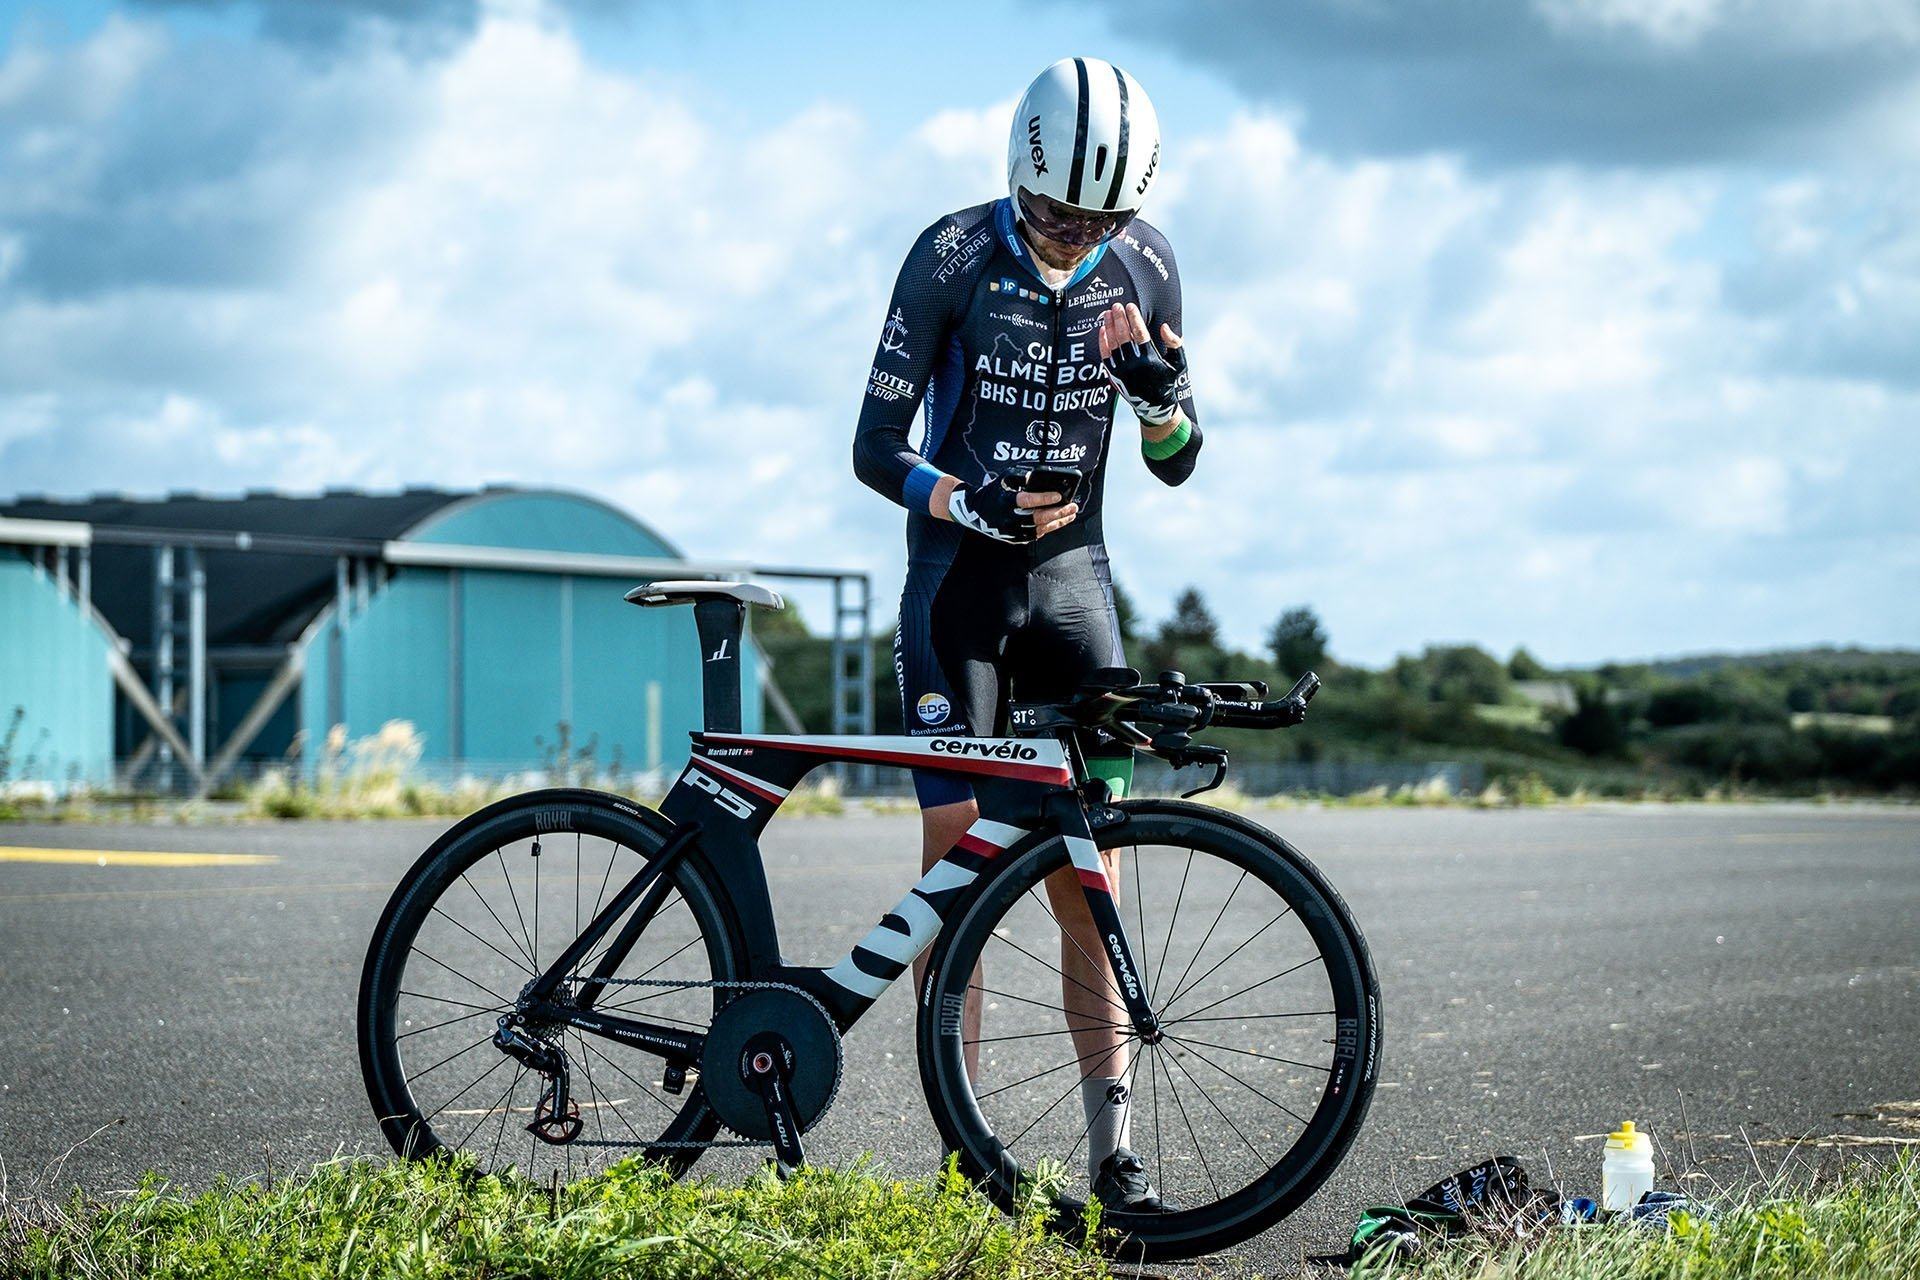 Martin Toft Madsen was testing three different Parentini aerosuits for the Danish Cycling Federation prior to the World Championships in Yorkshire.